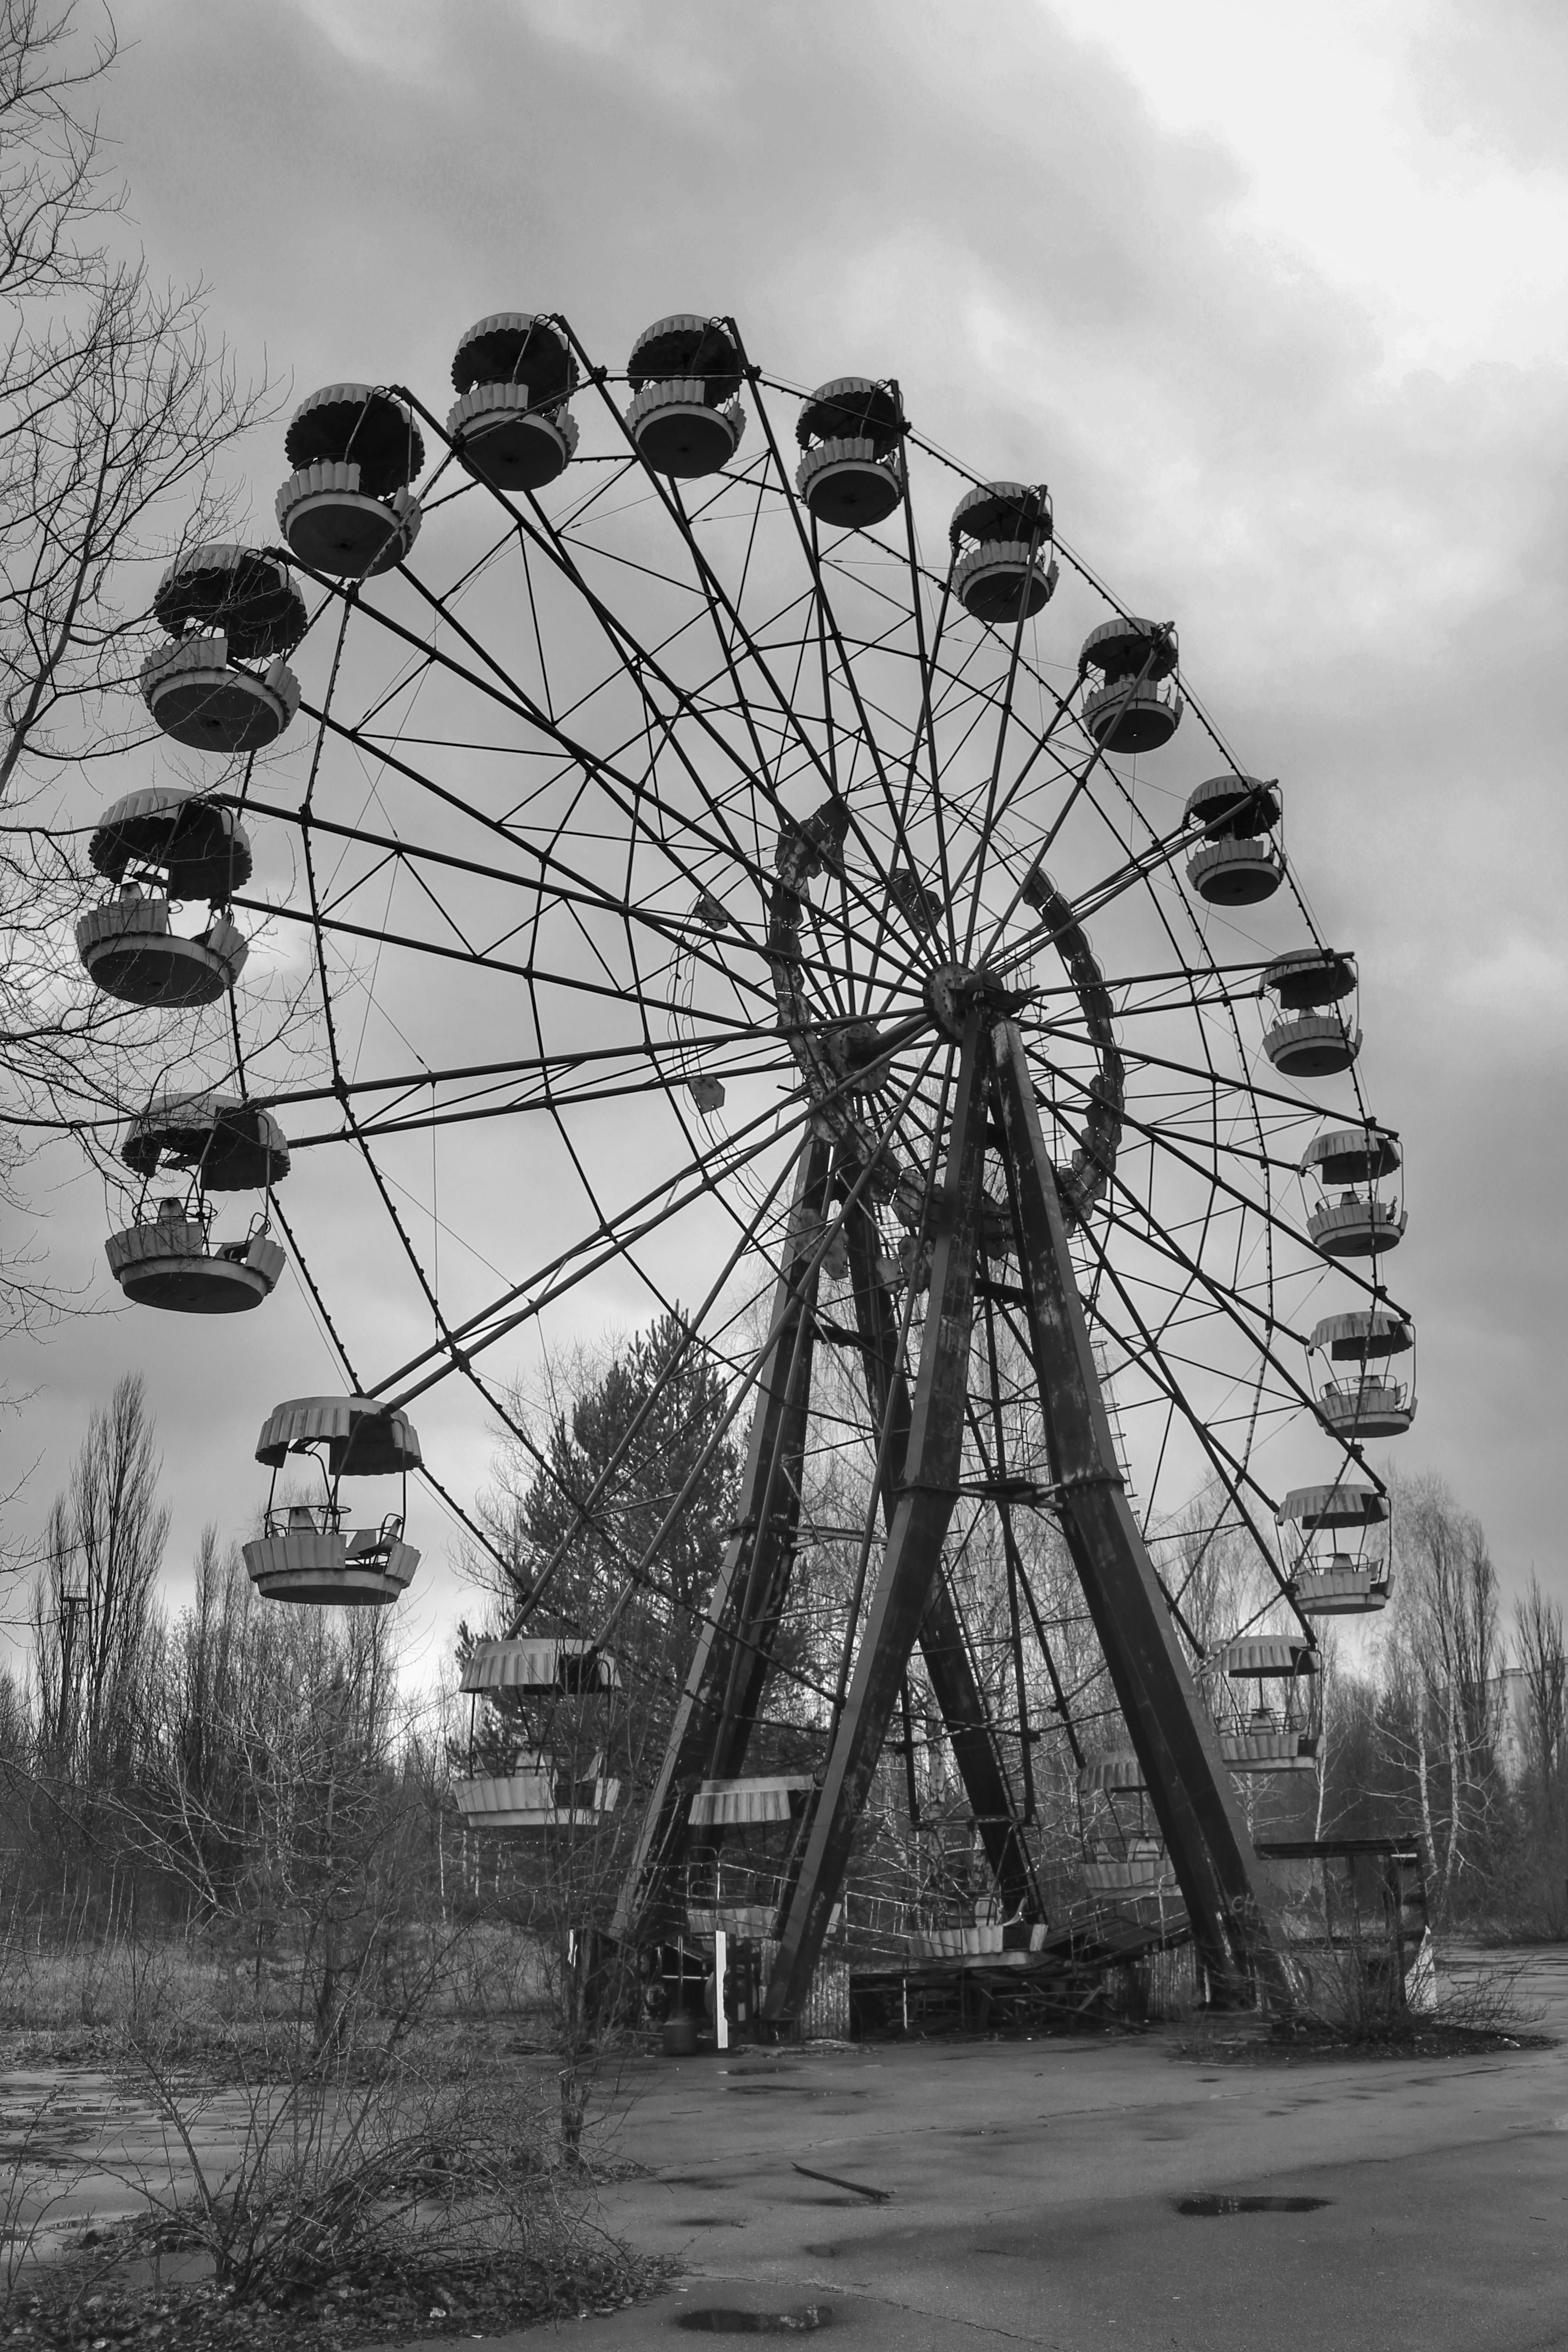 Ferris wheel in Pripyat Ukraine was really awesome to